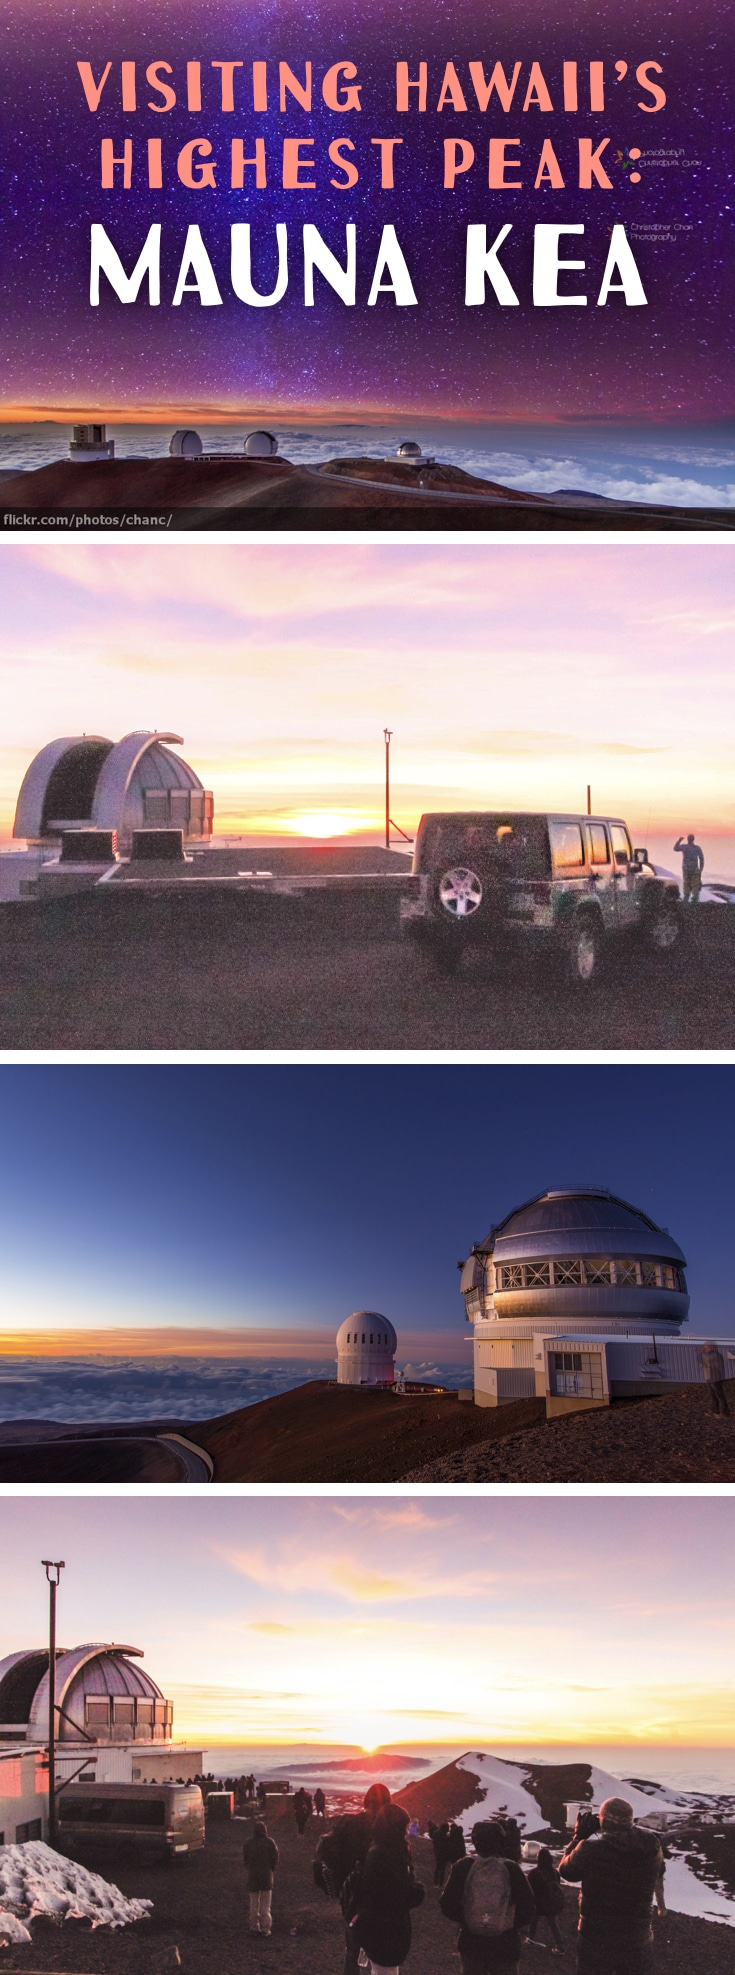 Visiting Mauna Kea: Sunsets & Stargazing from Hawaii's Highest Peak